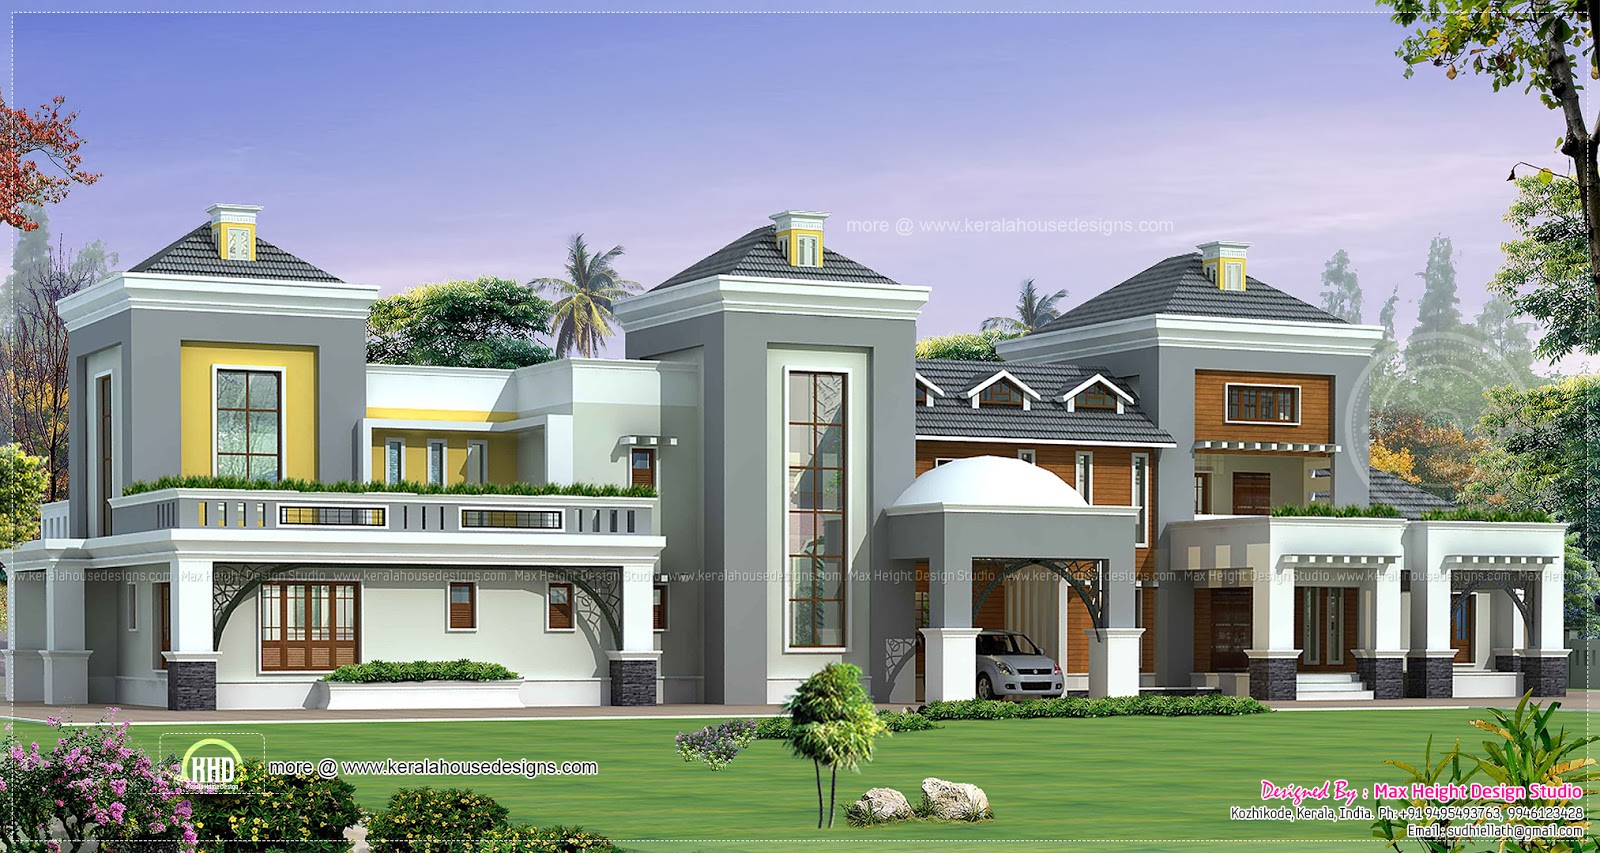 Luxury house plan with photo kerala home design and for Home plans and designs